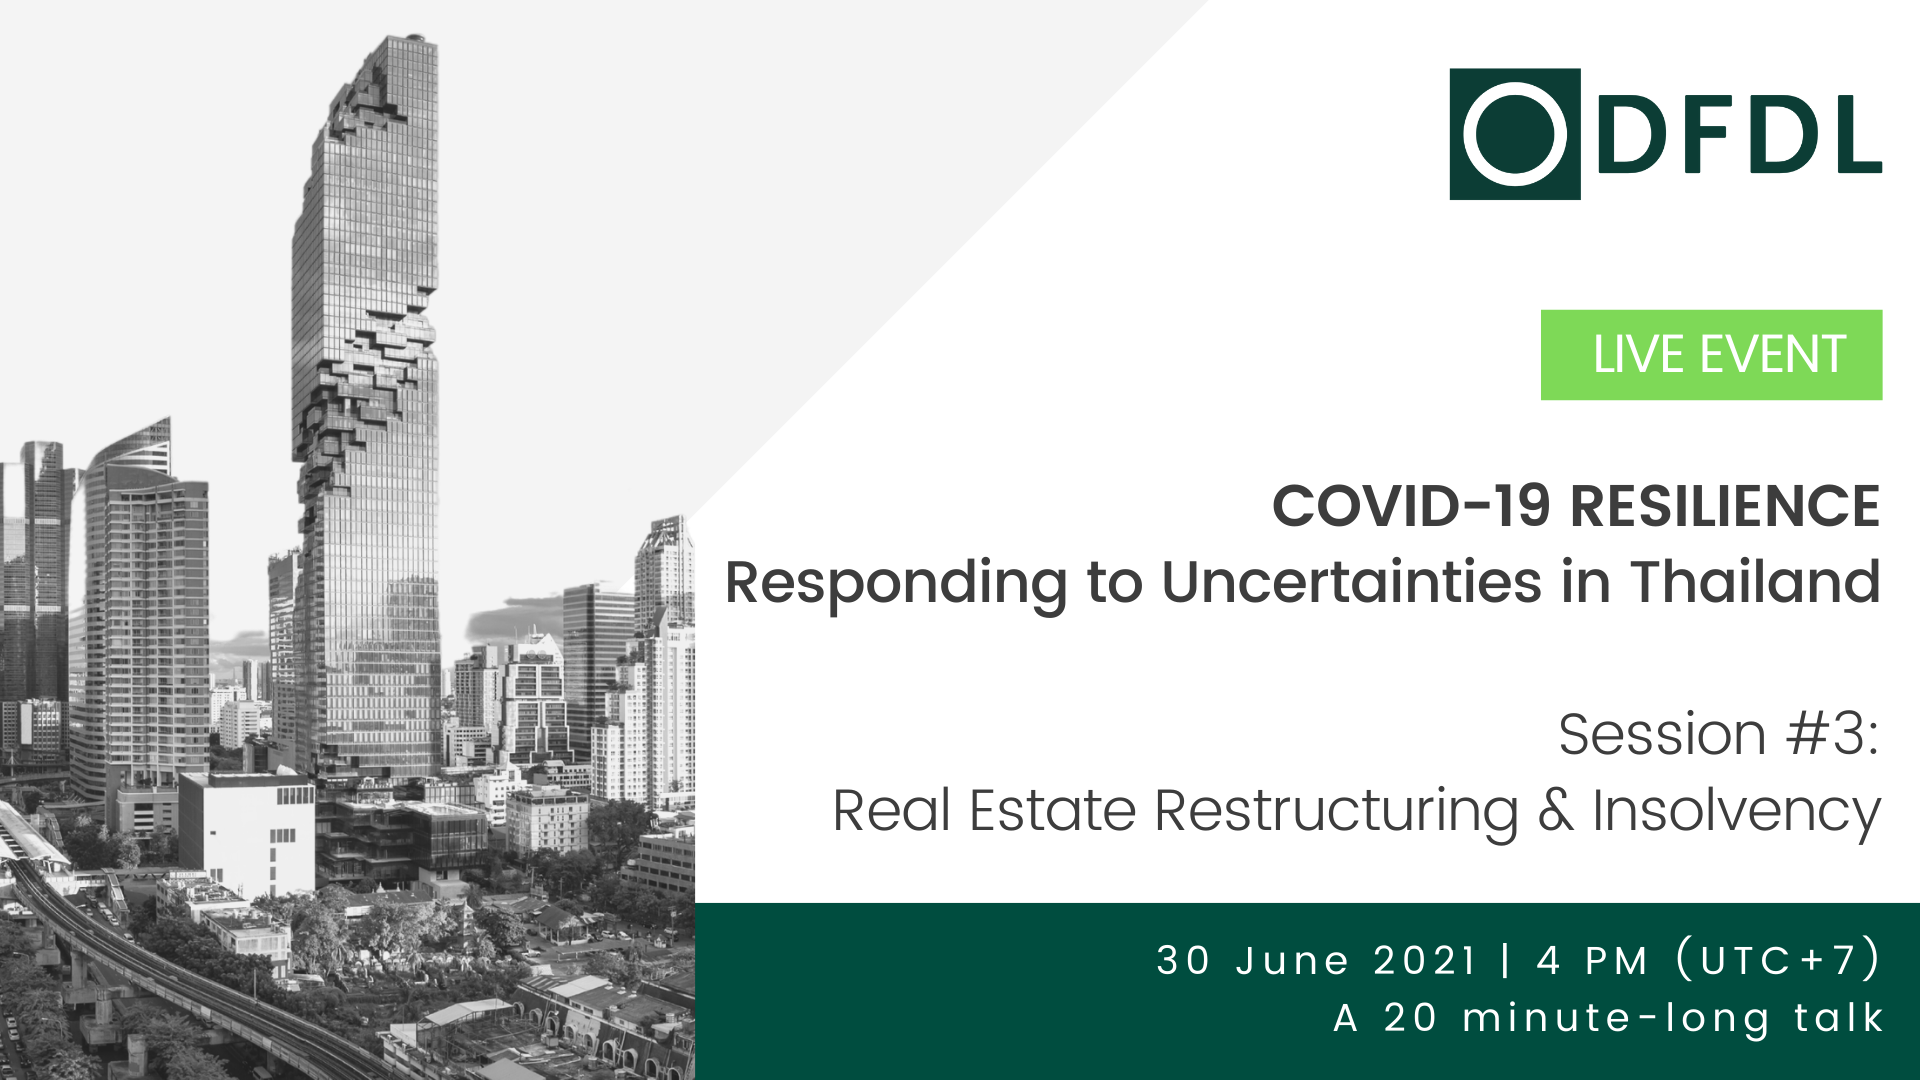 Real Estate Restructuring & Insolvency – COVID-19 Resilience: Responding to Uncertainties in Thailand